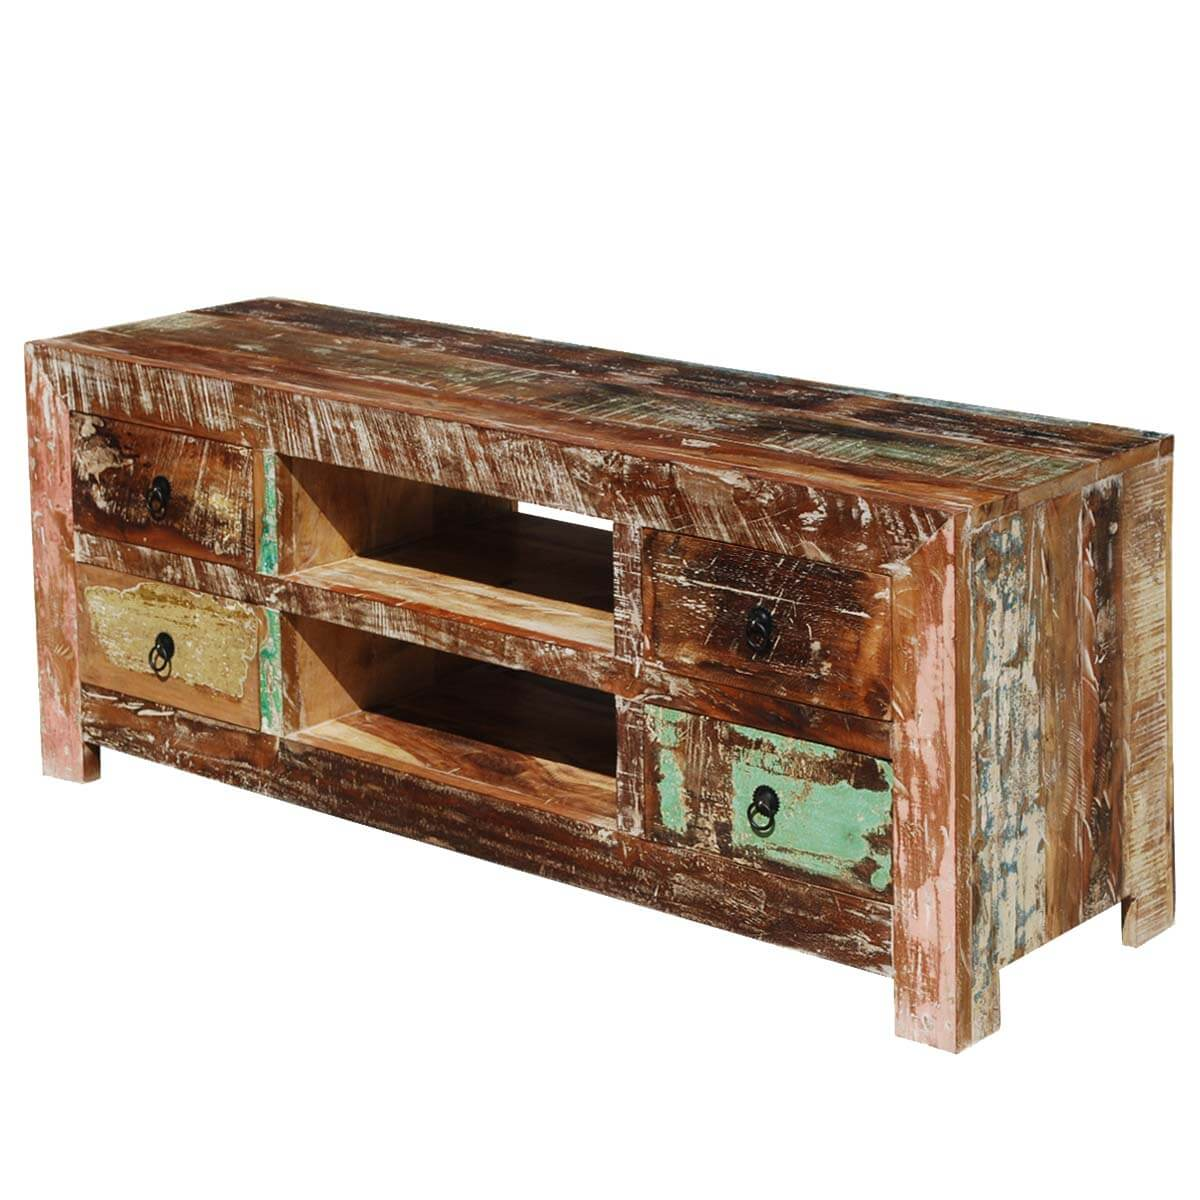 Moultrie Distressed Reclaimed Wood 4 Drawer Rustic Media TV Stand